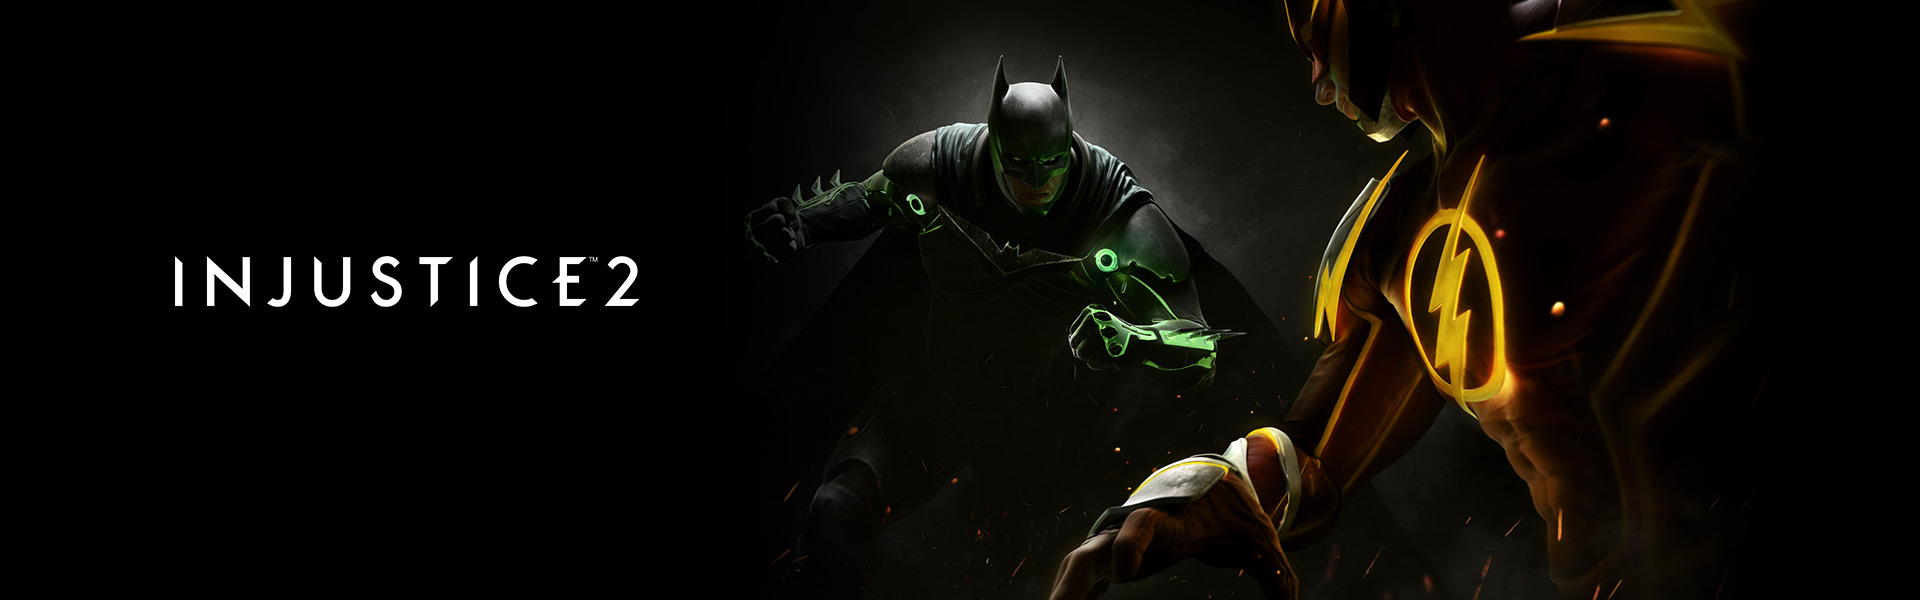 Injustice 2, dark image of Batman and The Flash squaring up to fight each other